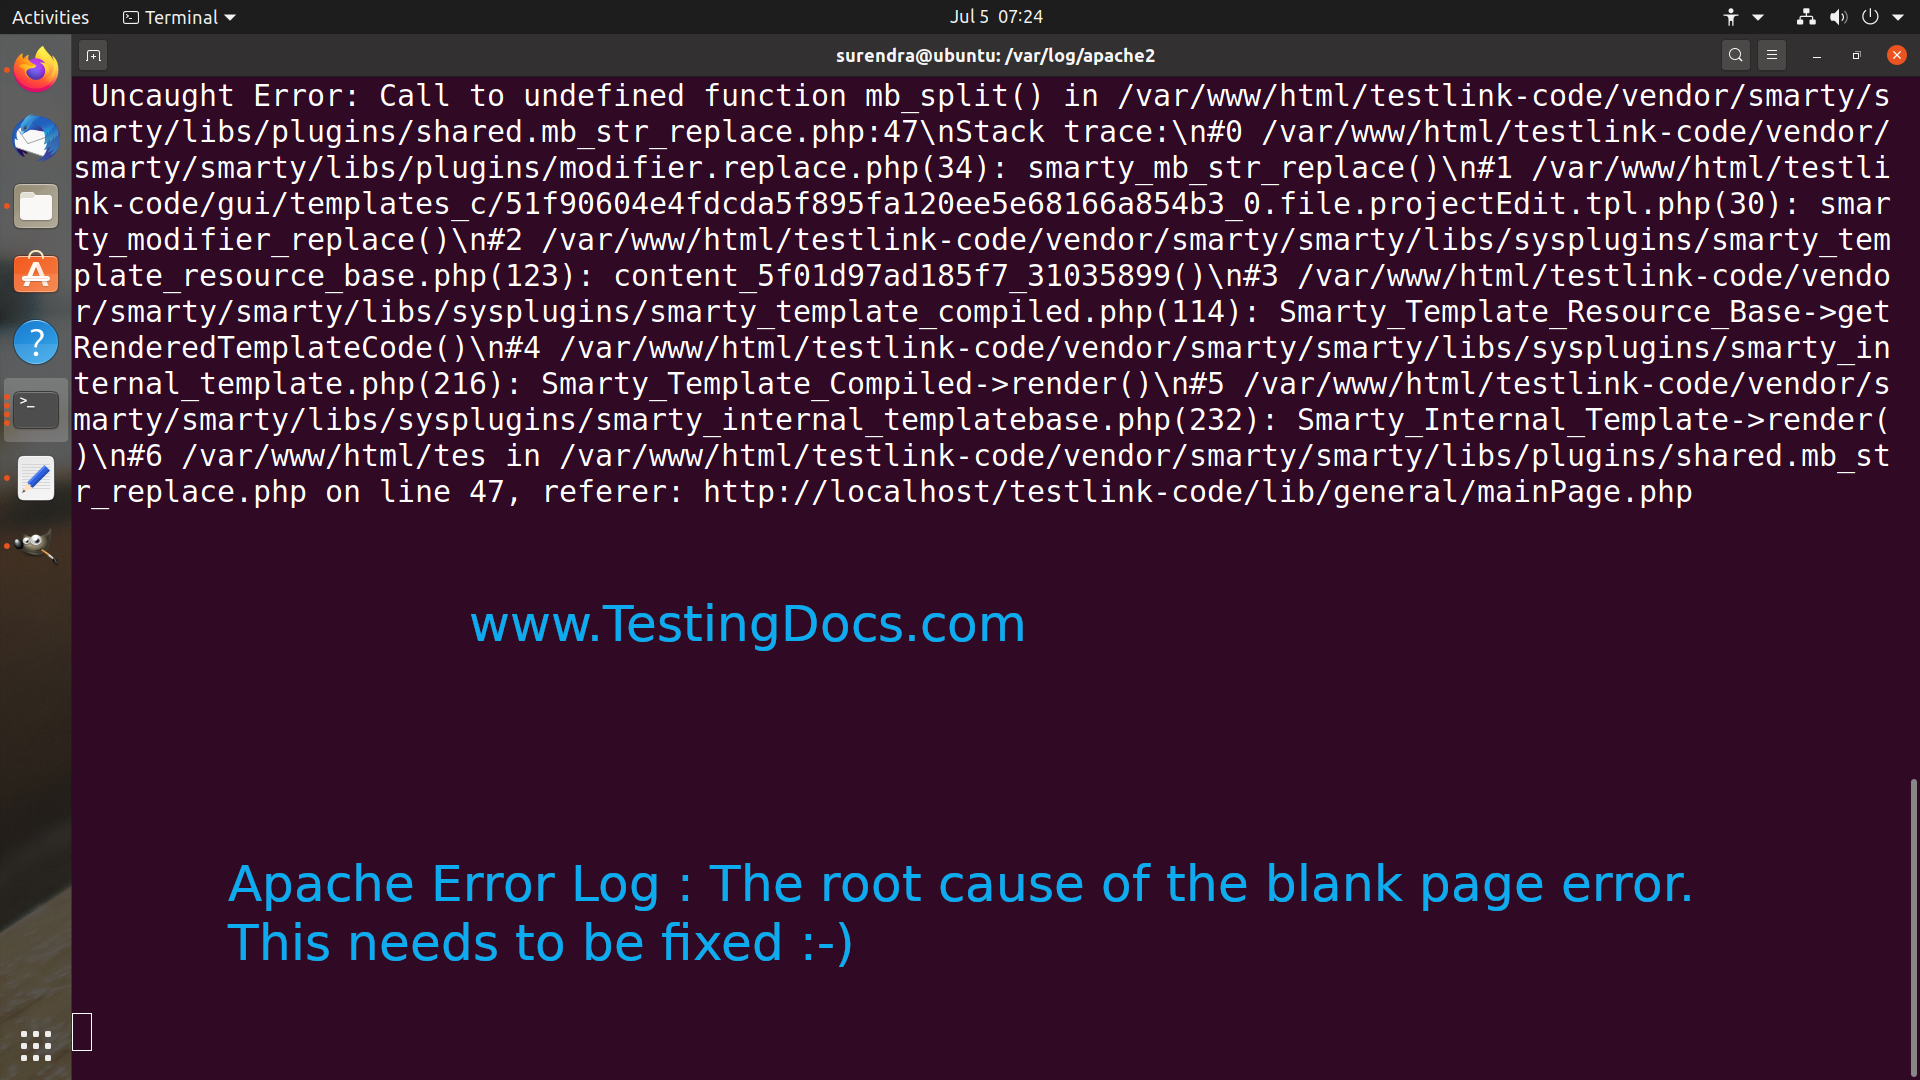 Error log Apache Root cause